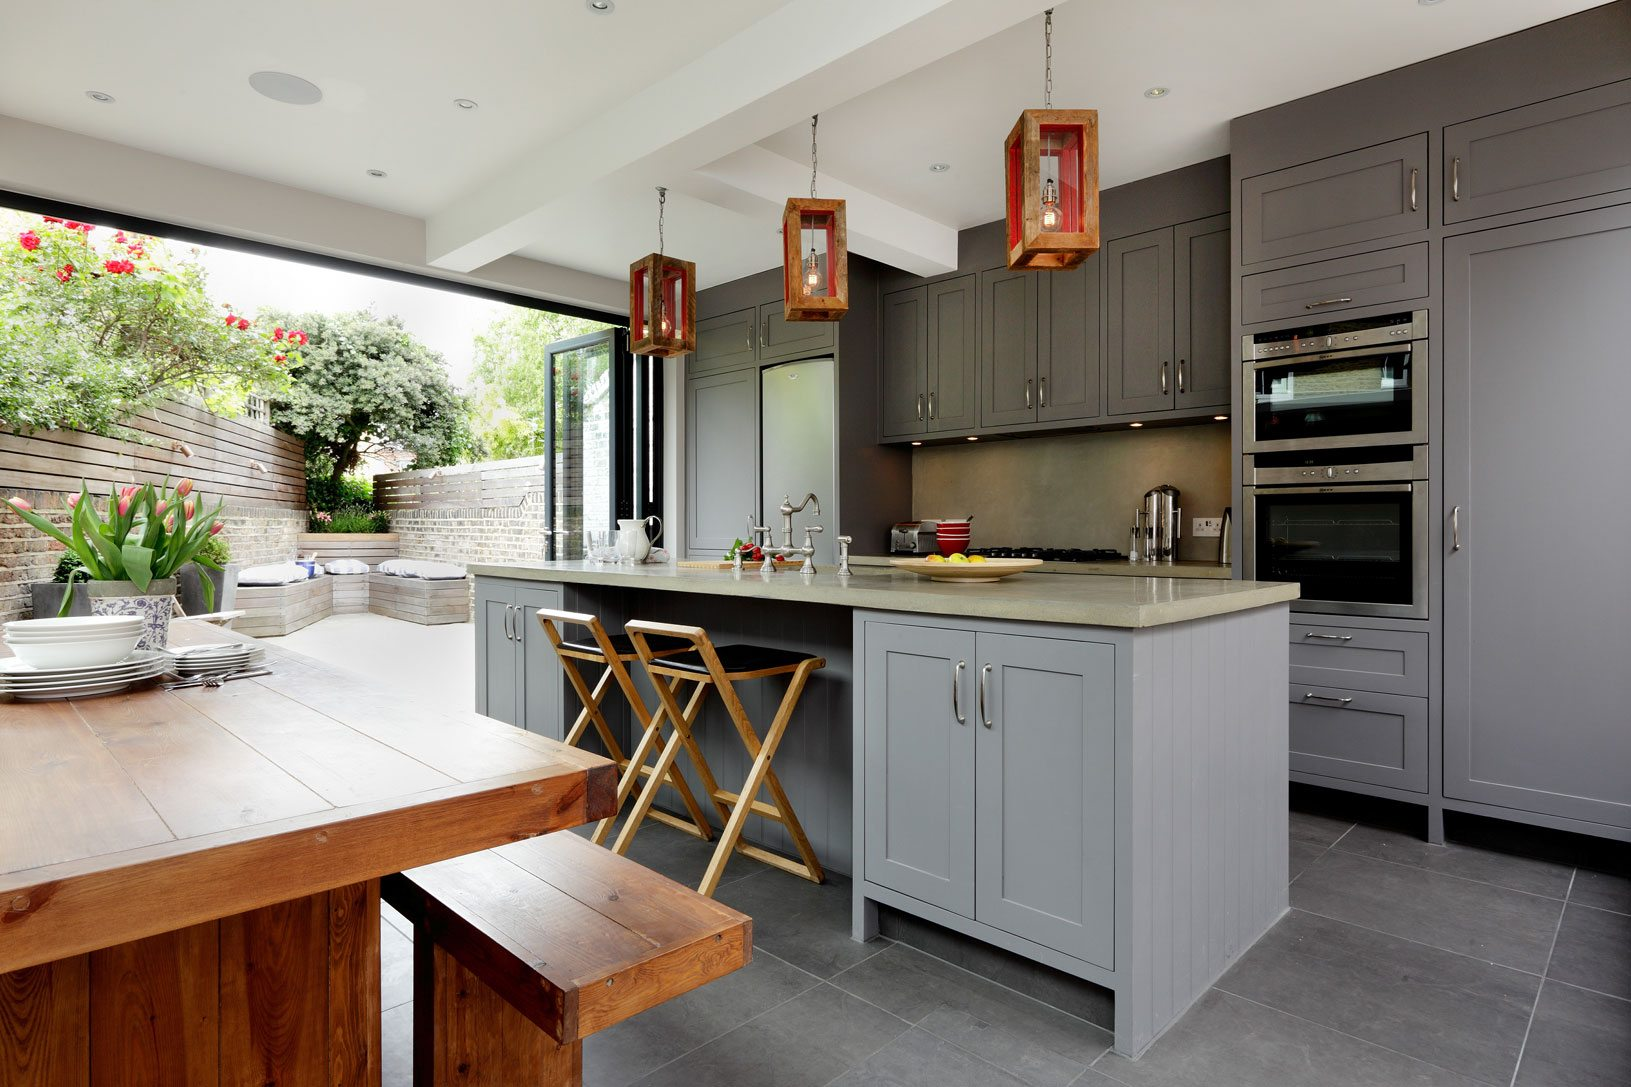 modern kitchen leading to outdoor space